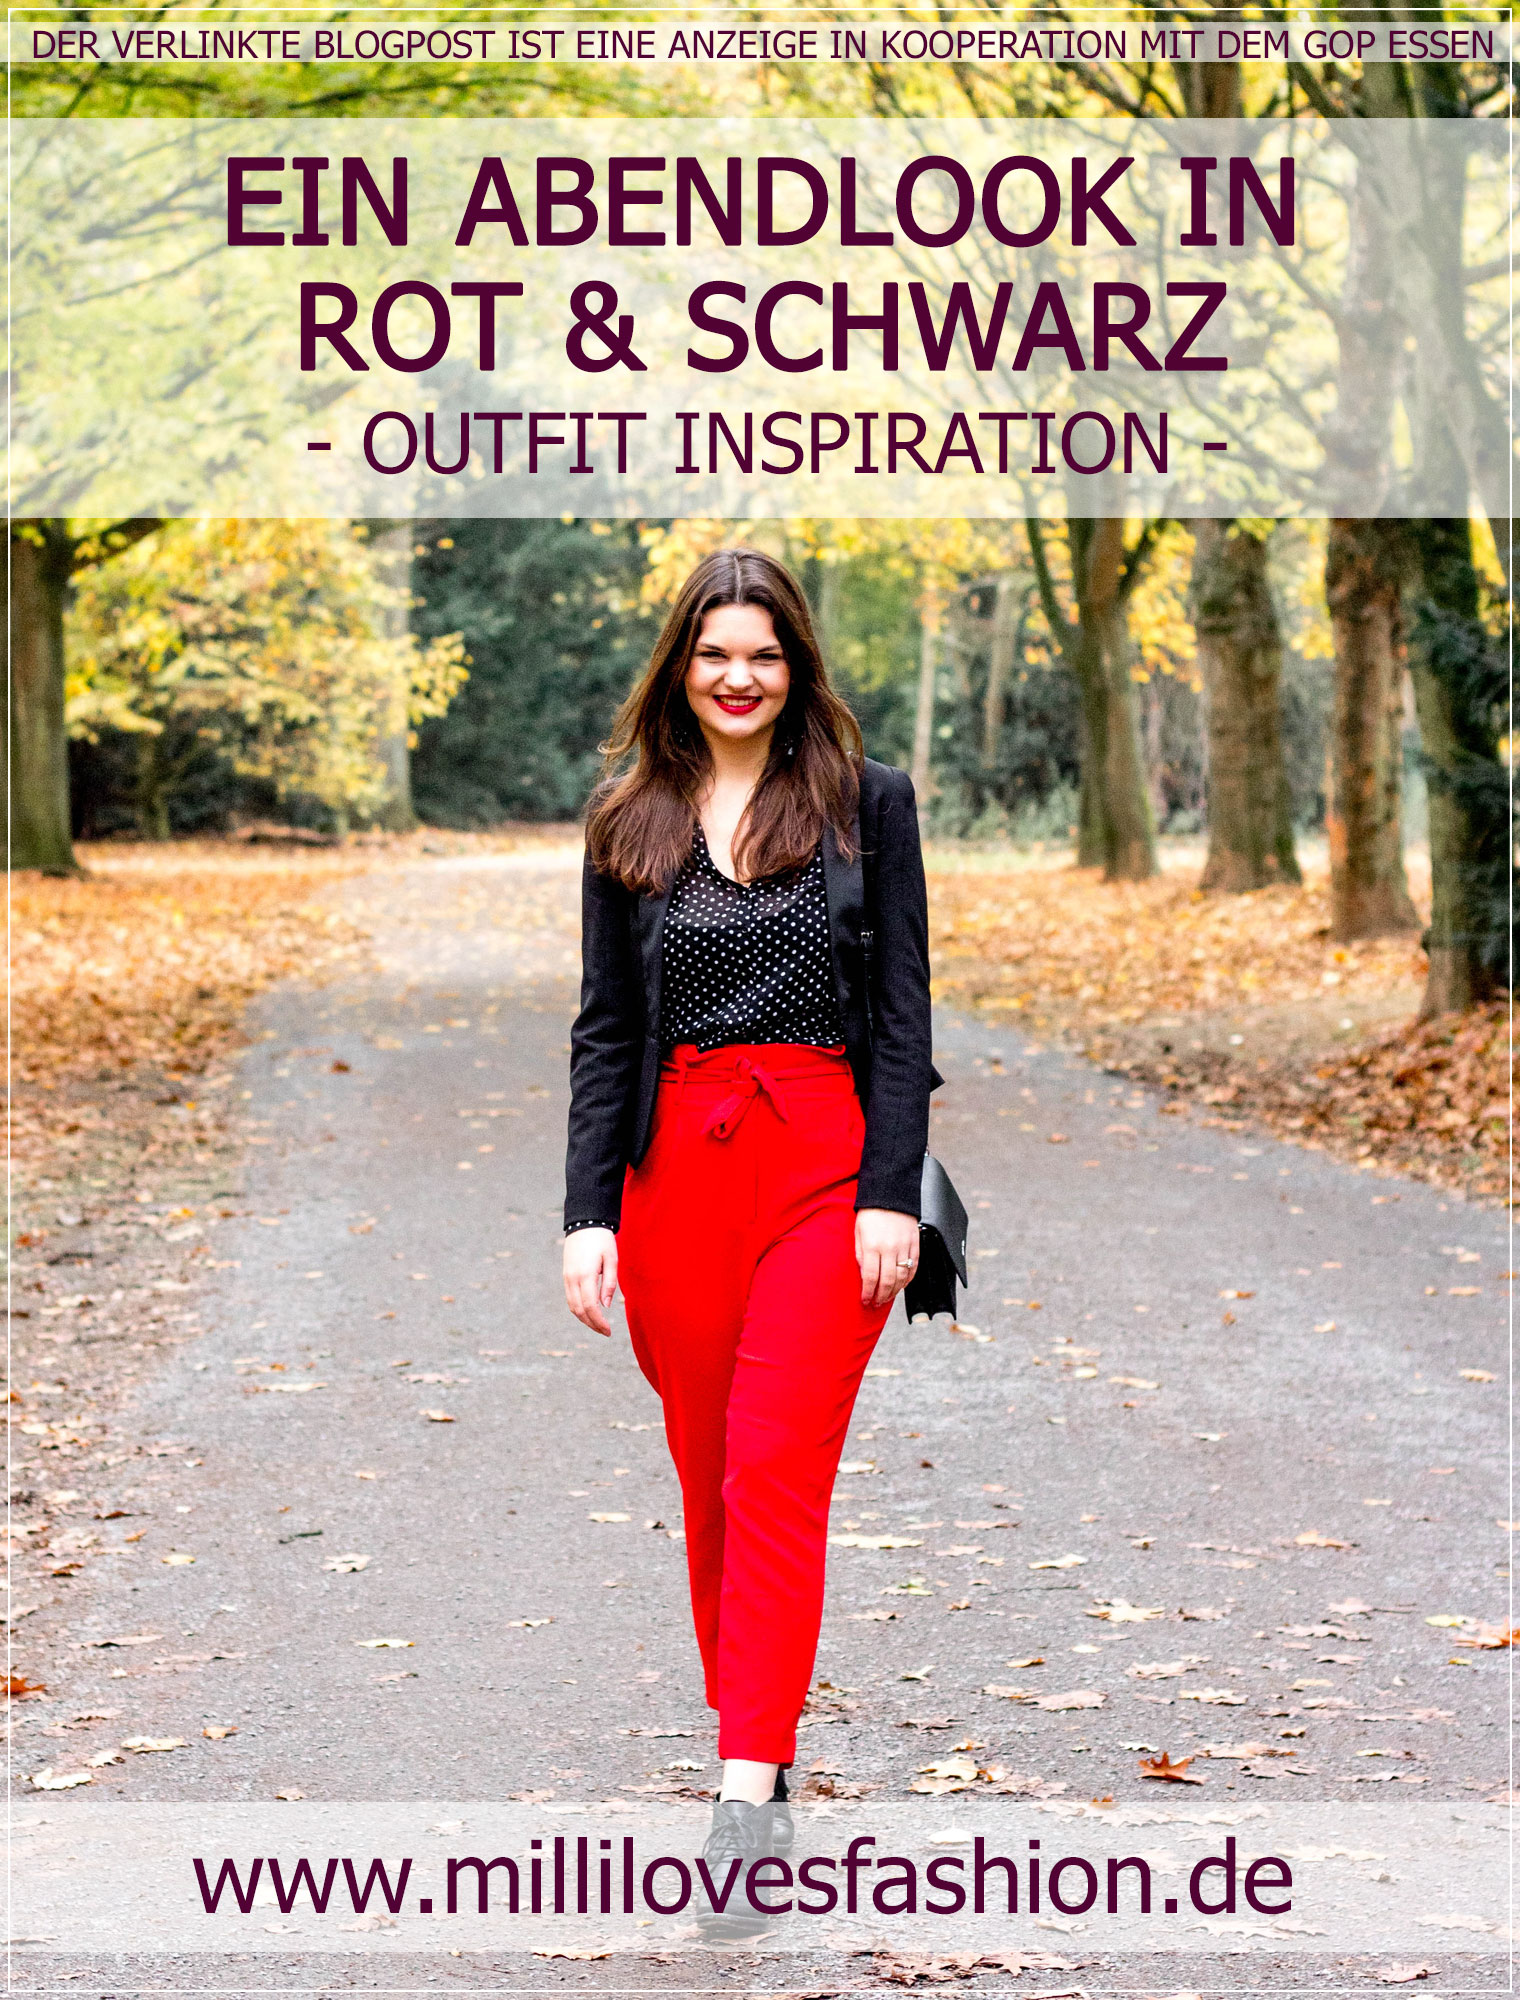 Paperbag Hose, Rot, Business Style, GOP Essen, Trendfarbe, Modetrend, eleganter Style, Herbstoutfit, Classylook, Outfitinspiration, Winterstyle, Abendoutfit, Modebloggerin, Fashionbloggerin, Modeblog, Ruhrgebiet